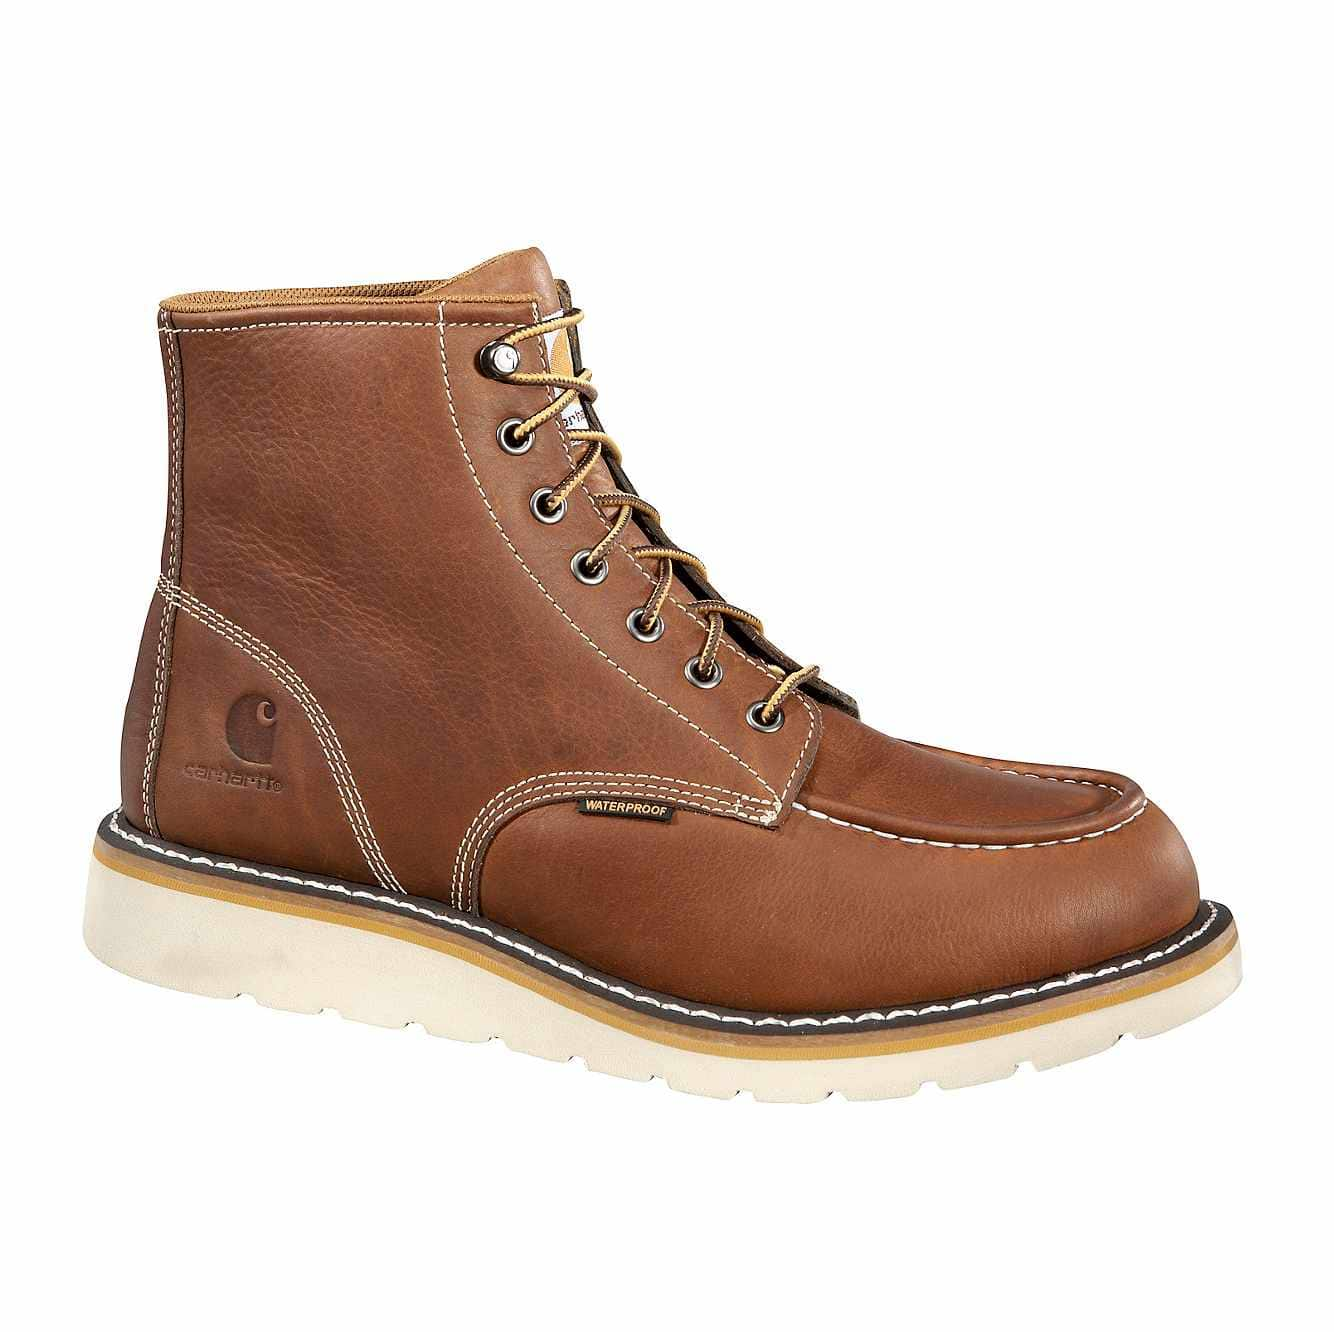 Picture of 6-Inch Non-Safety Toe Wedge Boot in Tan